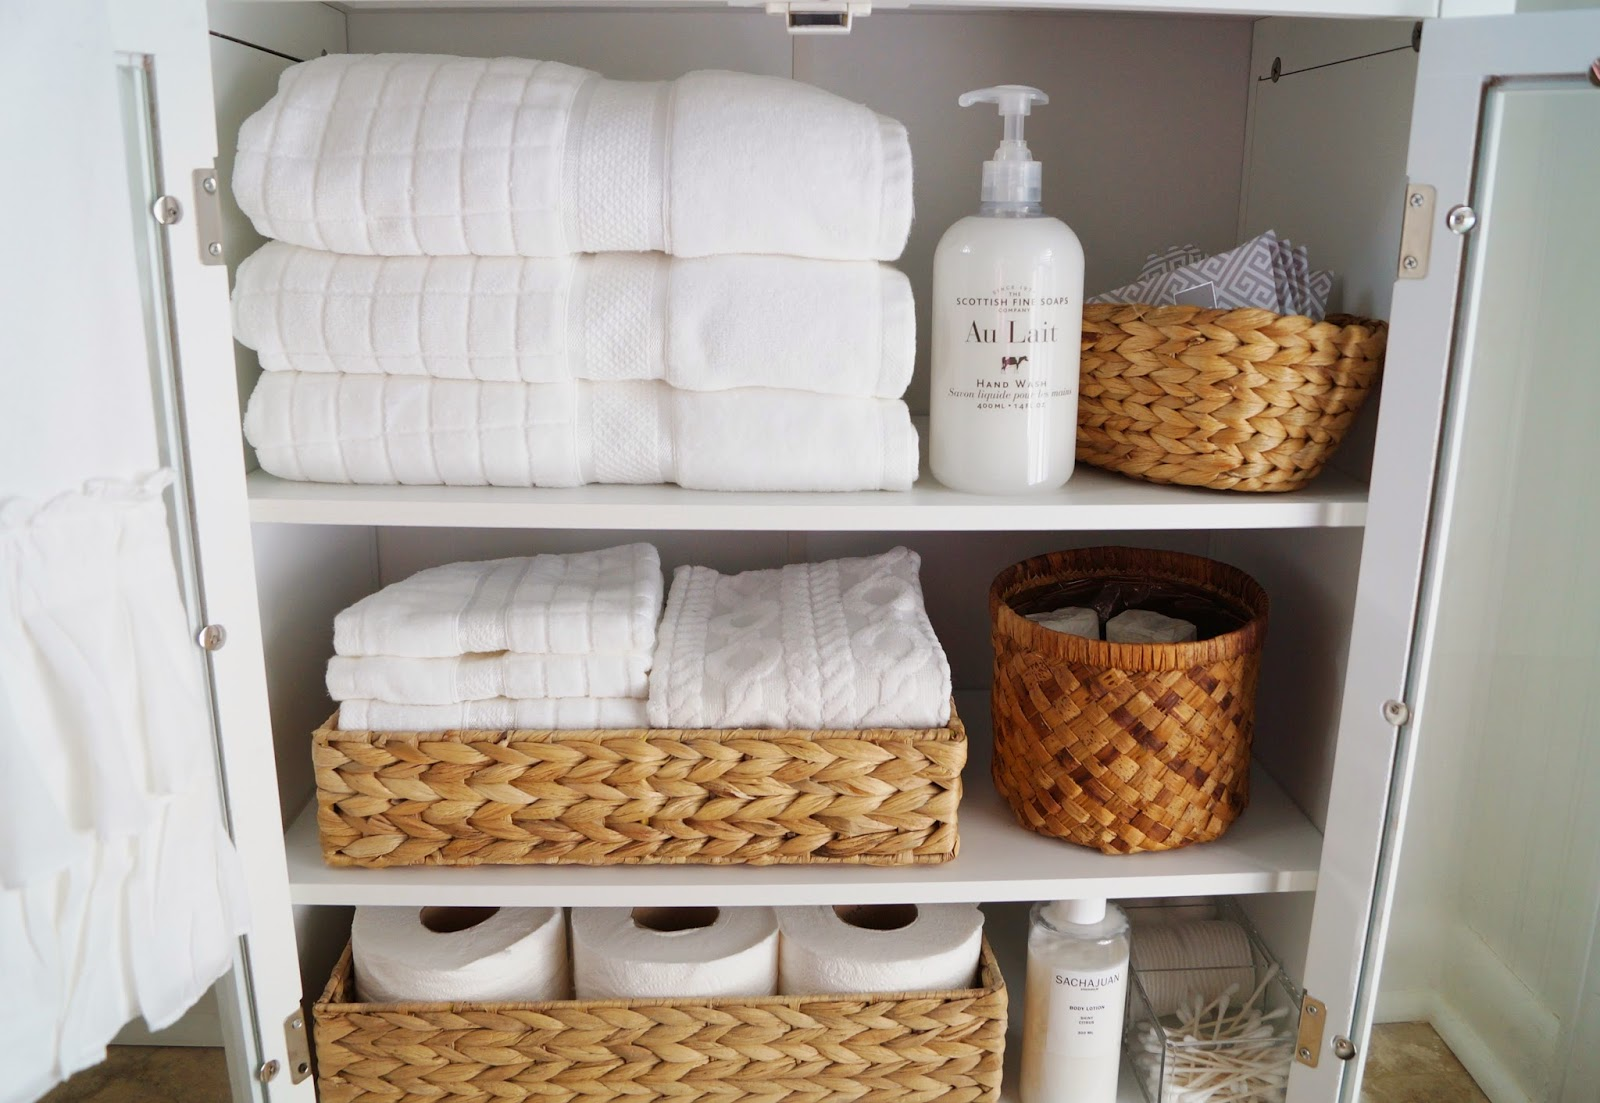 bathroom linen closet. Small Bathroom Linen Cabinet Don t Disturb This Groove